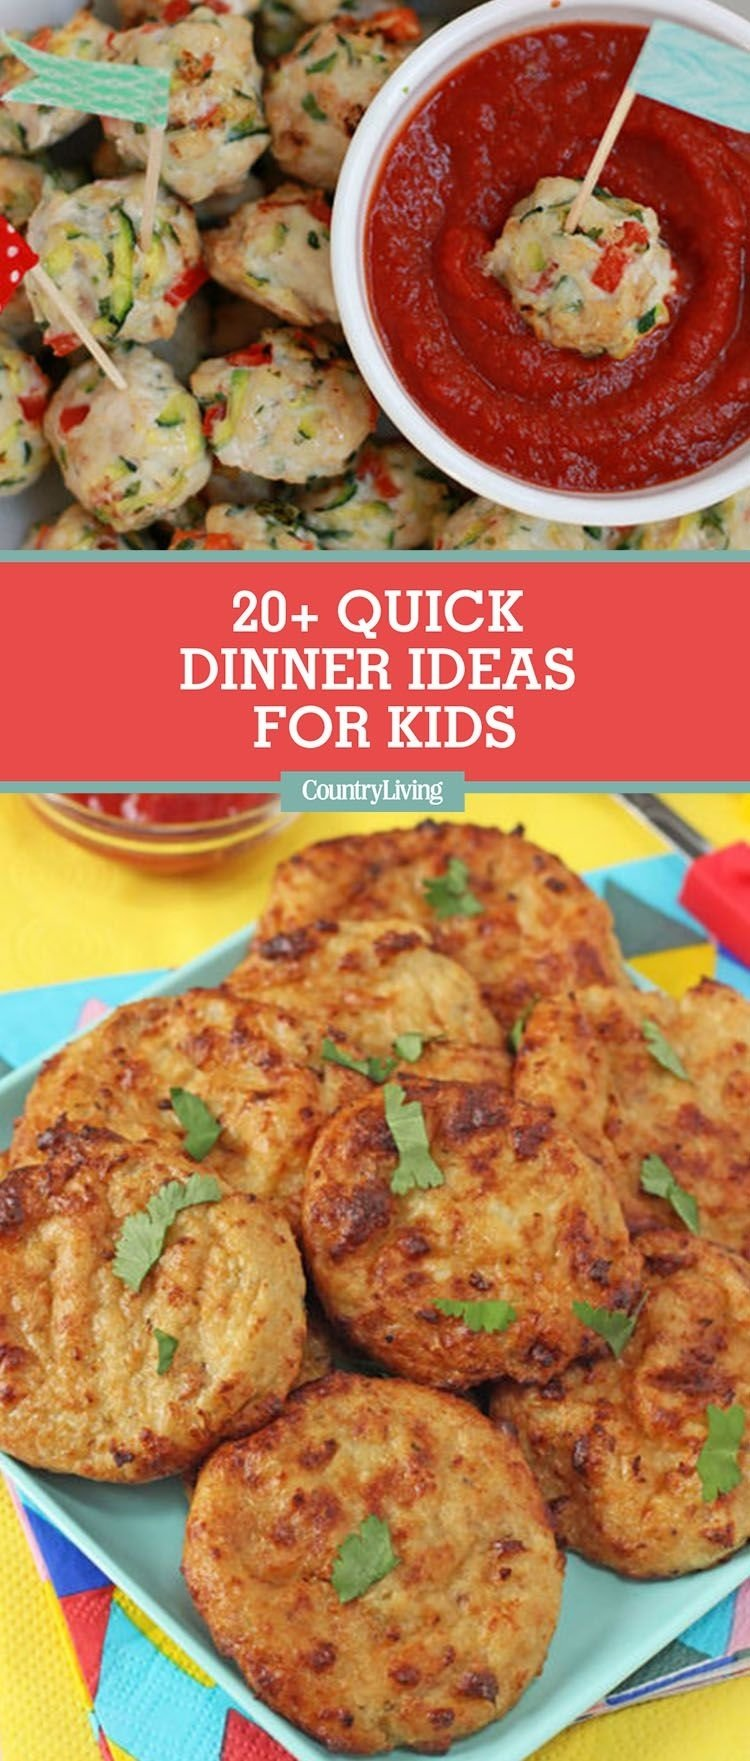 20 easy dinner ideas for kids - quick kid friendly dinner recipes